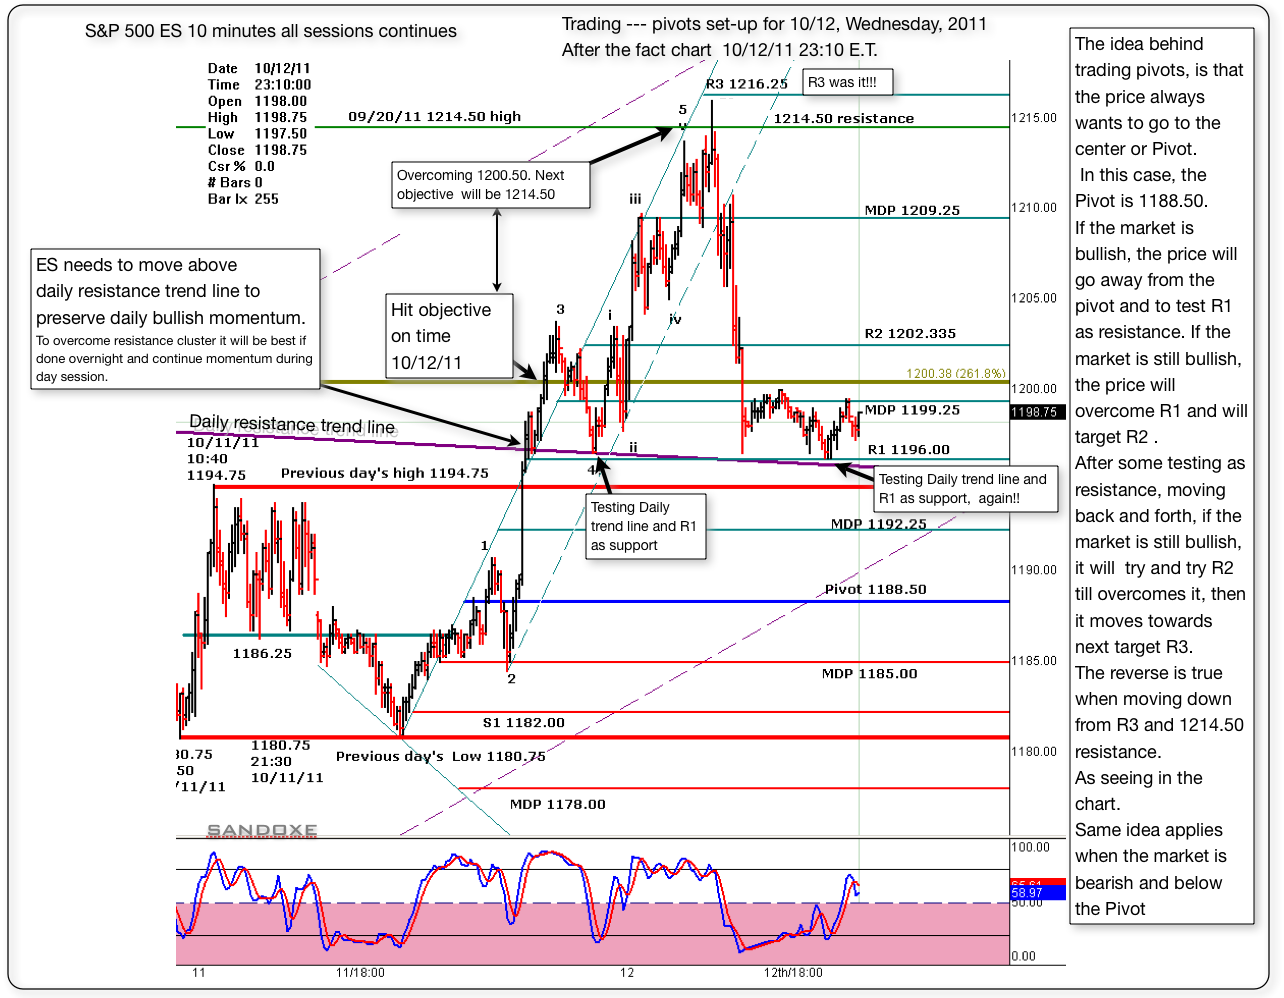 sp 500 es 10 minute pivots set up follow up chart and after the fact for 10121